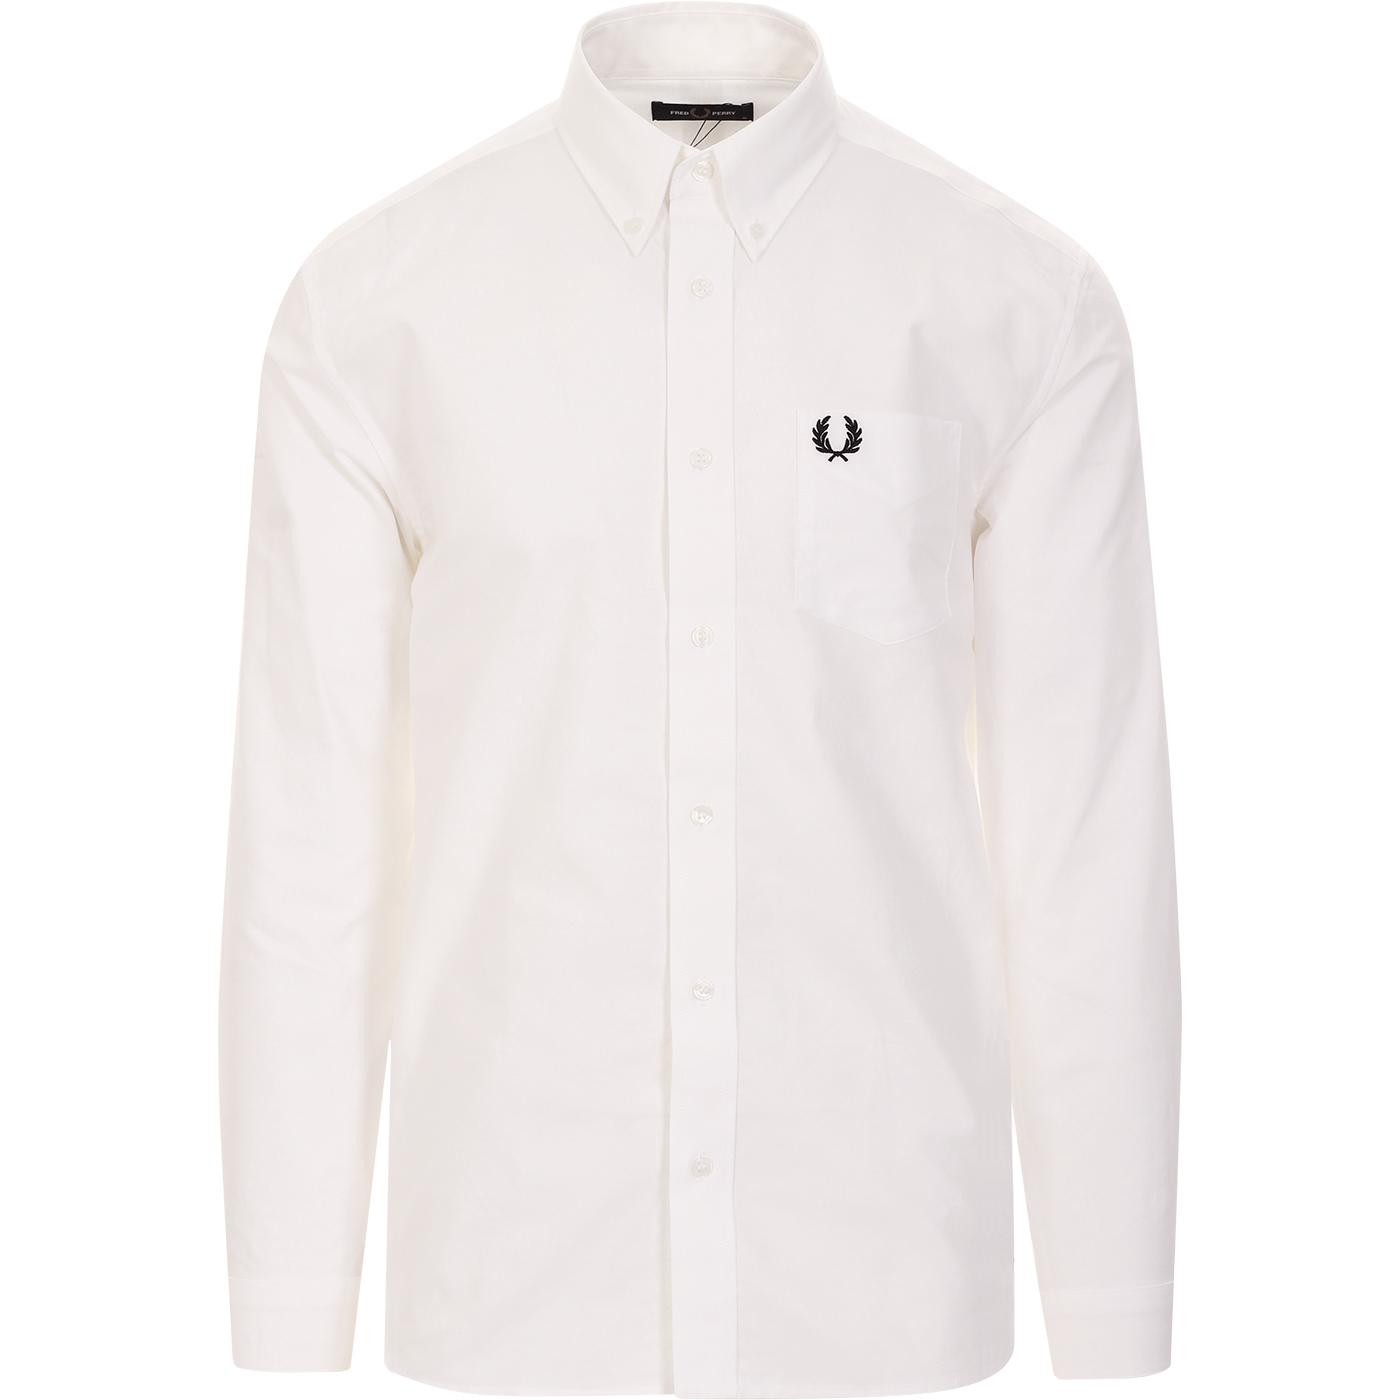 FRED PERRY Mod Button Down Oxford Shirt (White)